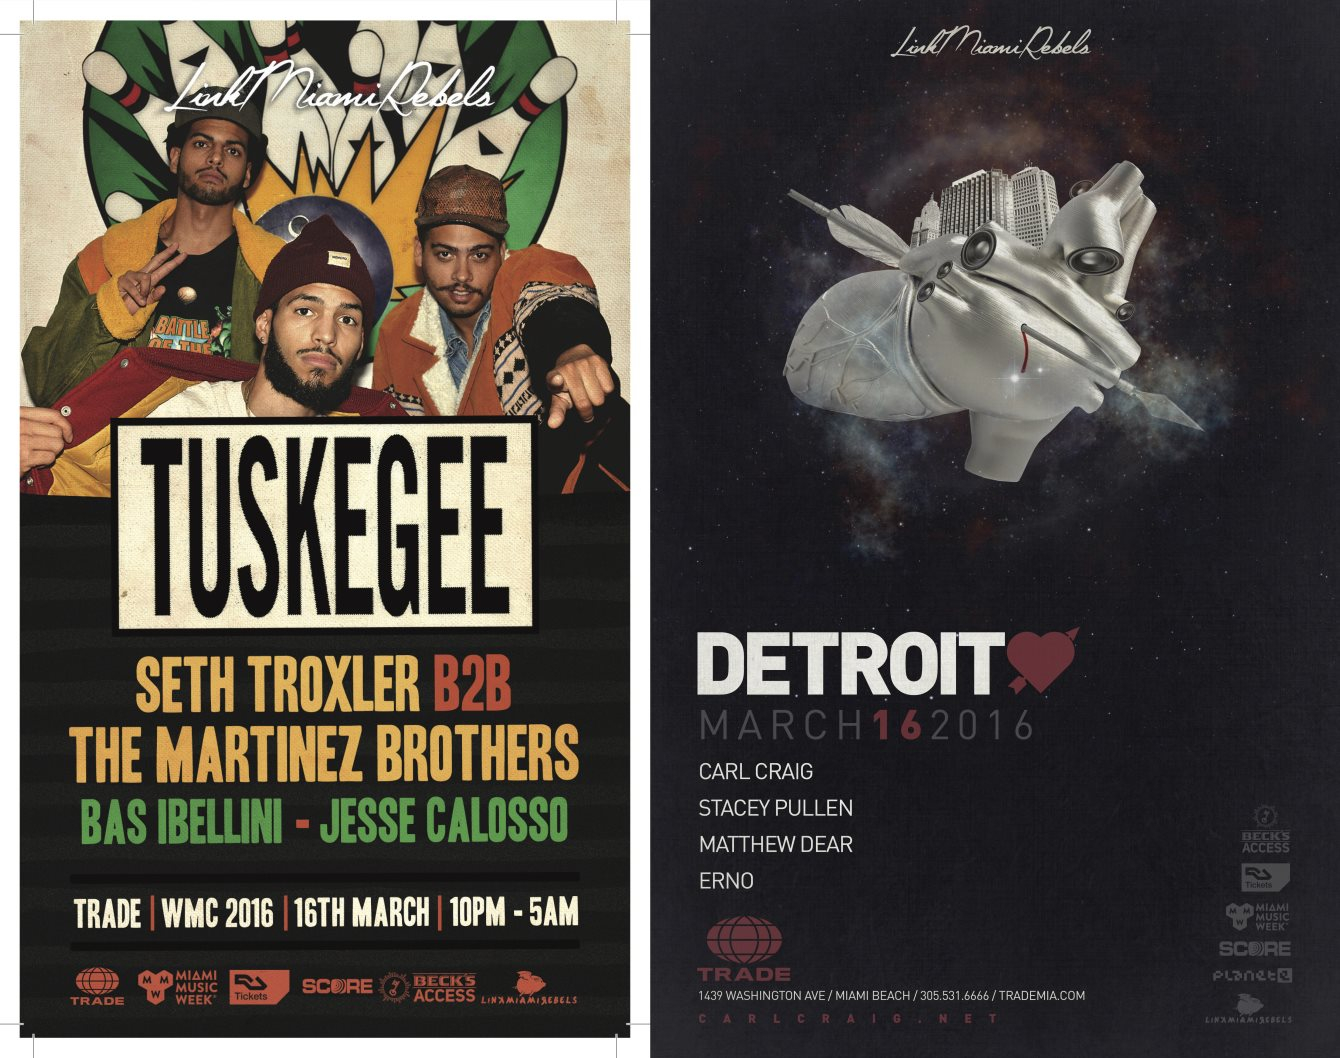 Tuskegee + Detroit Love by Link Miami Rebels - Flyer front